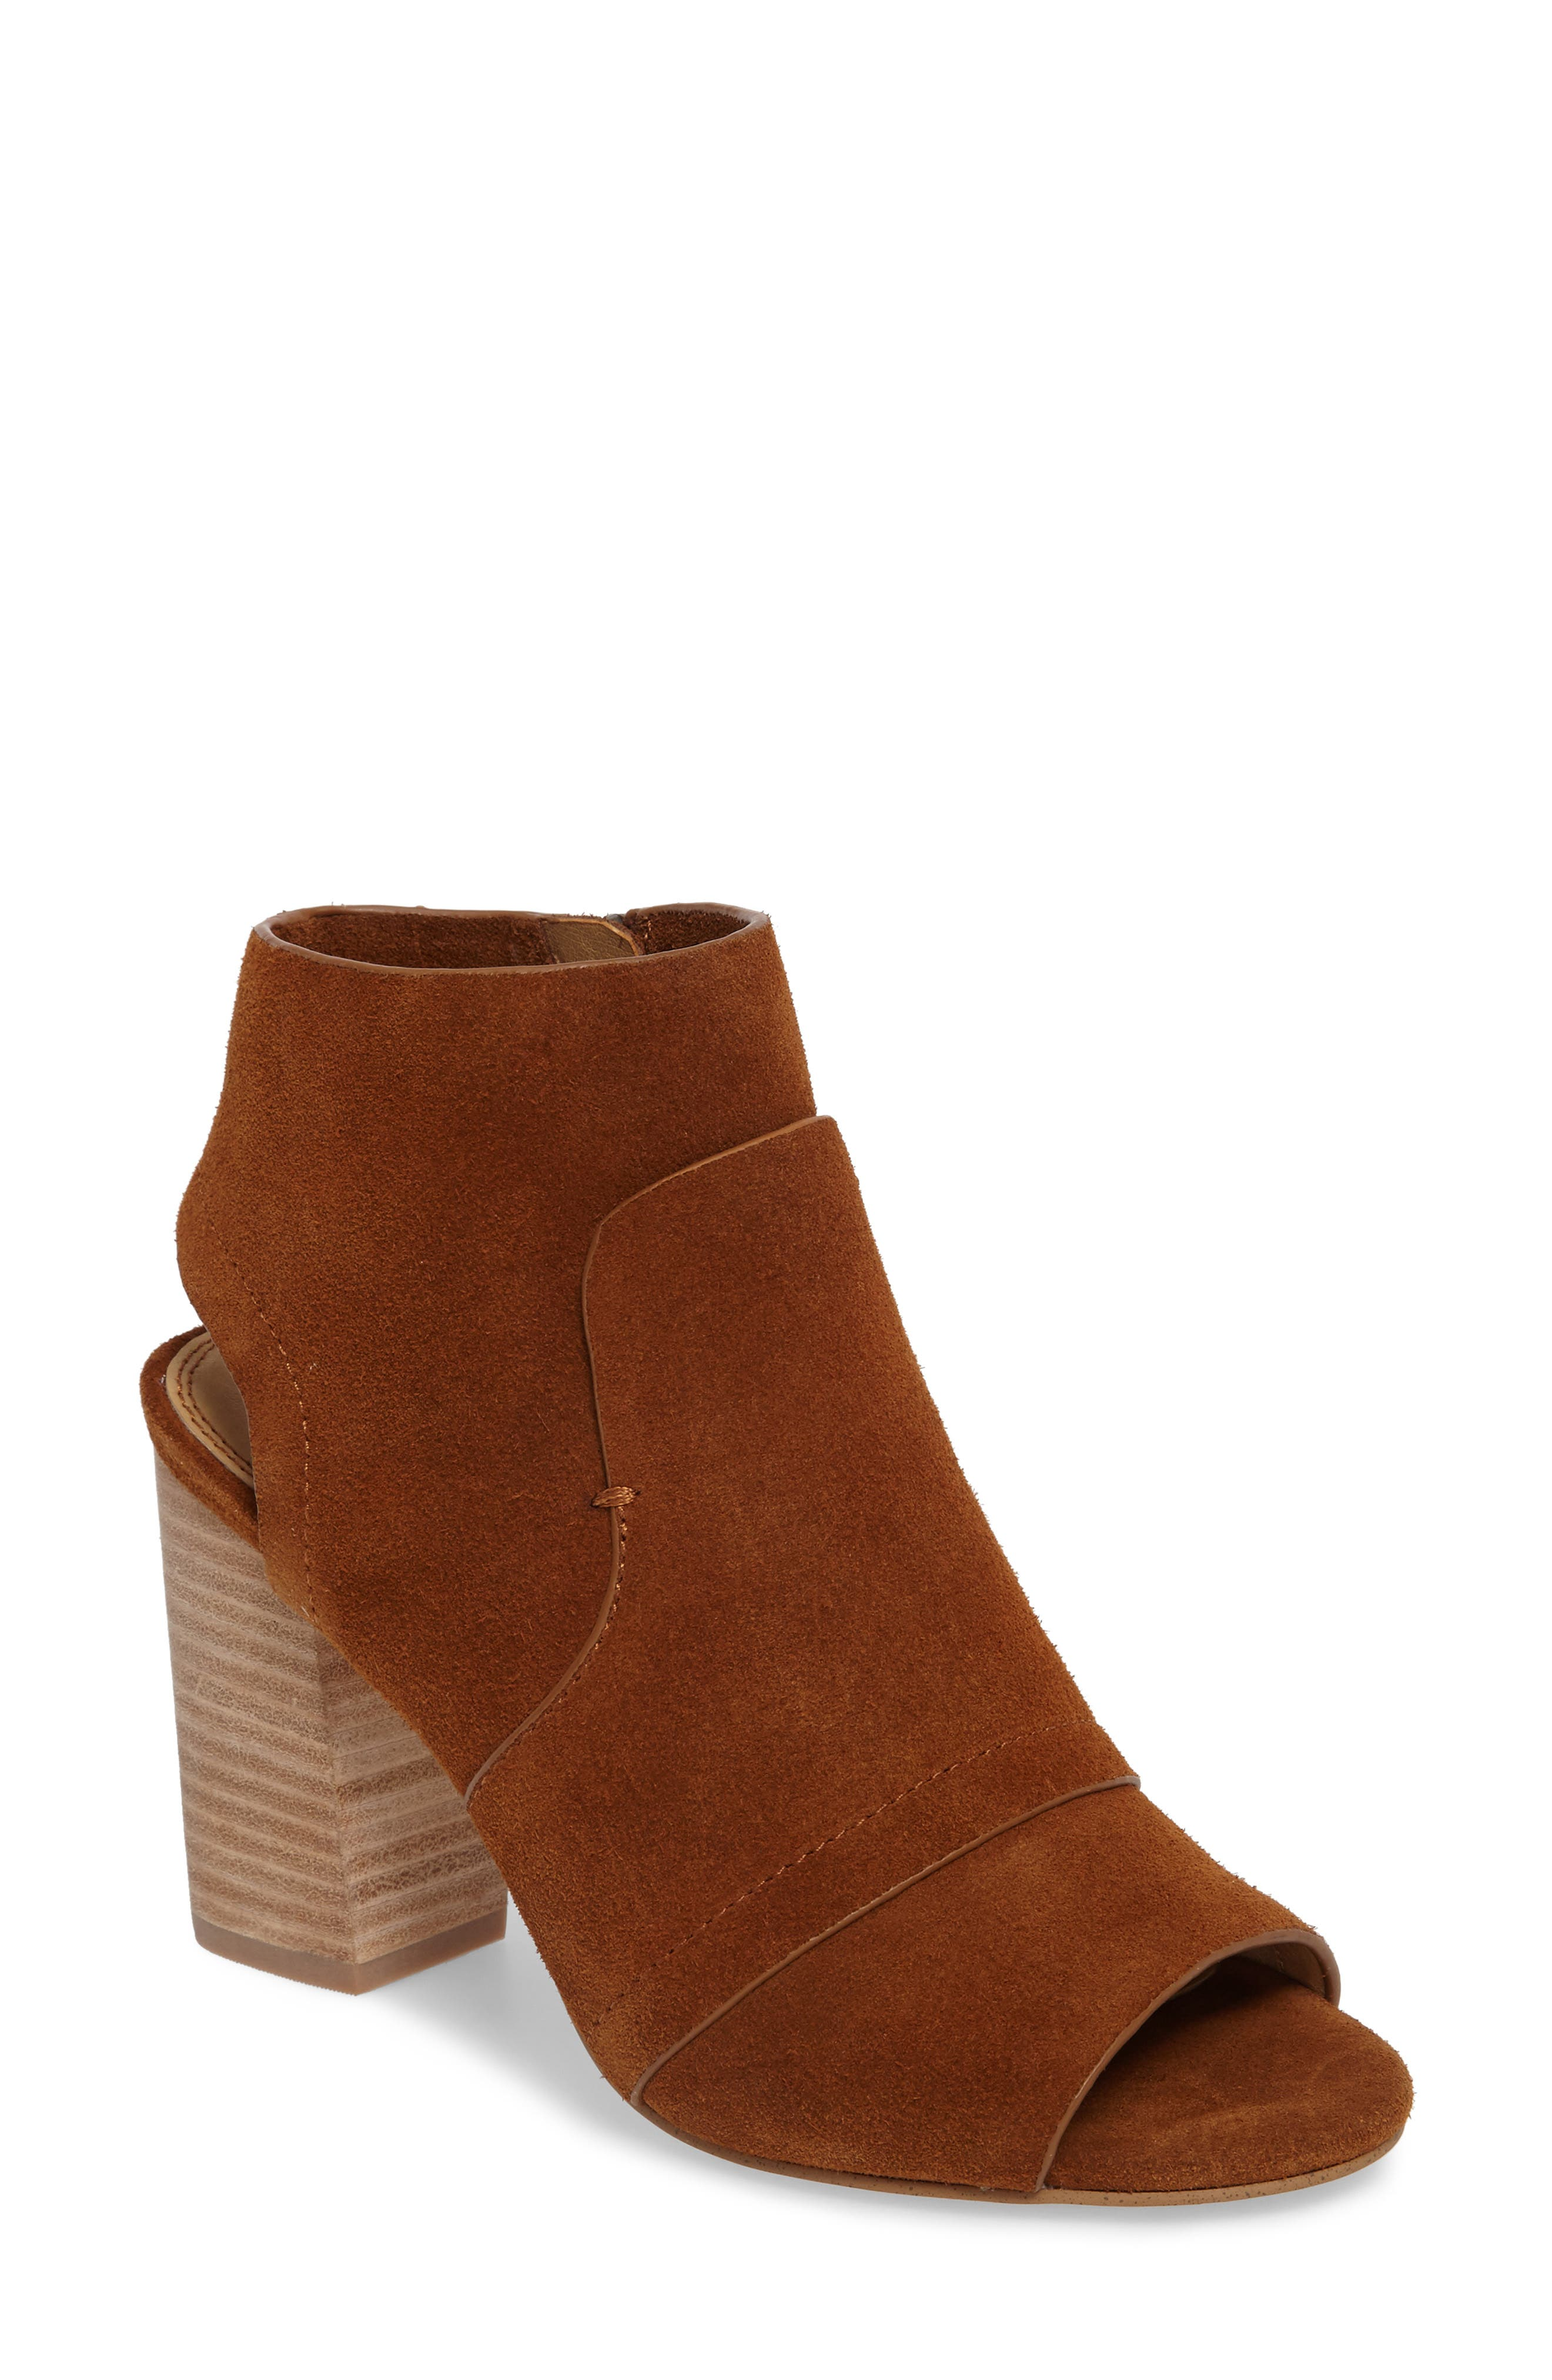 Darelene II Peep Toe Bootie,                         Main,                         color, Whiskey Suede